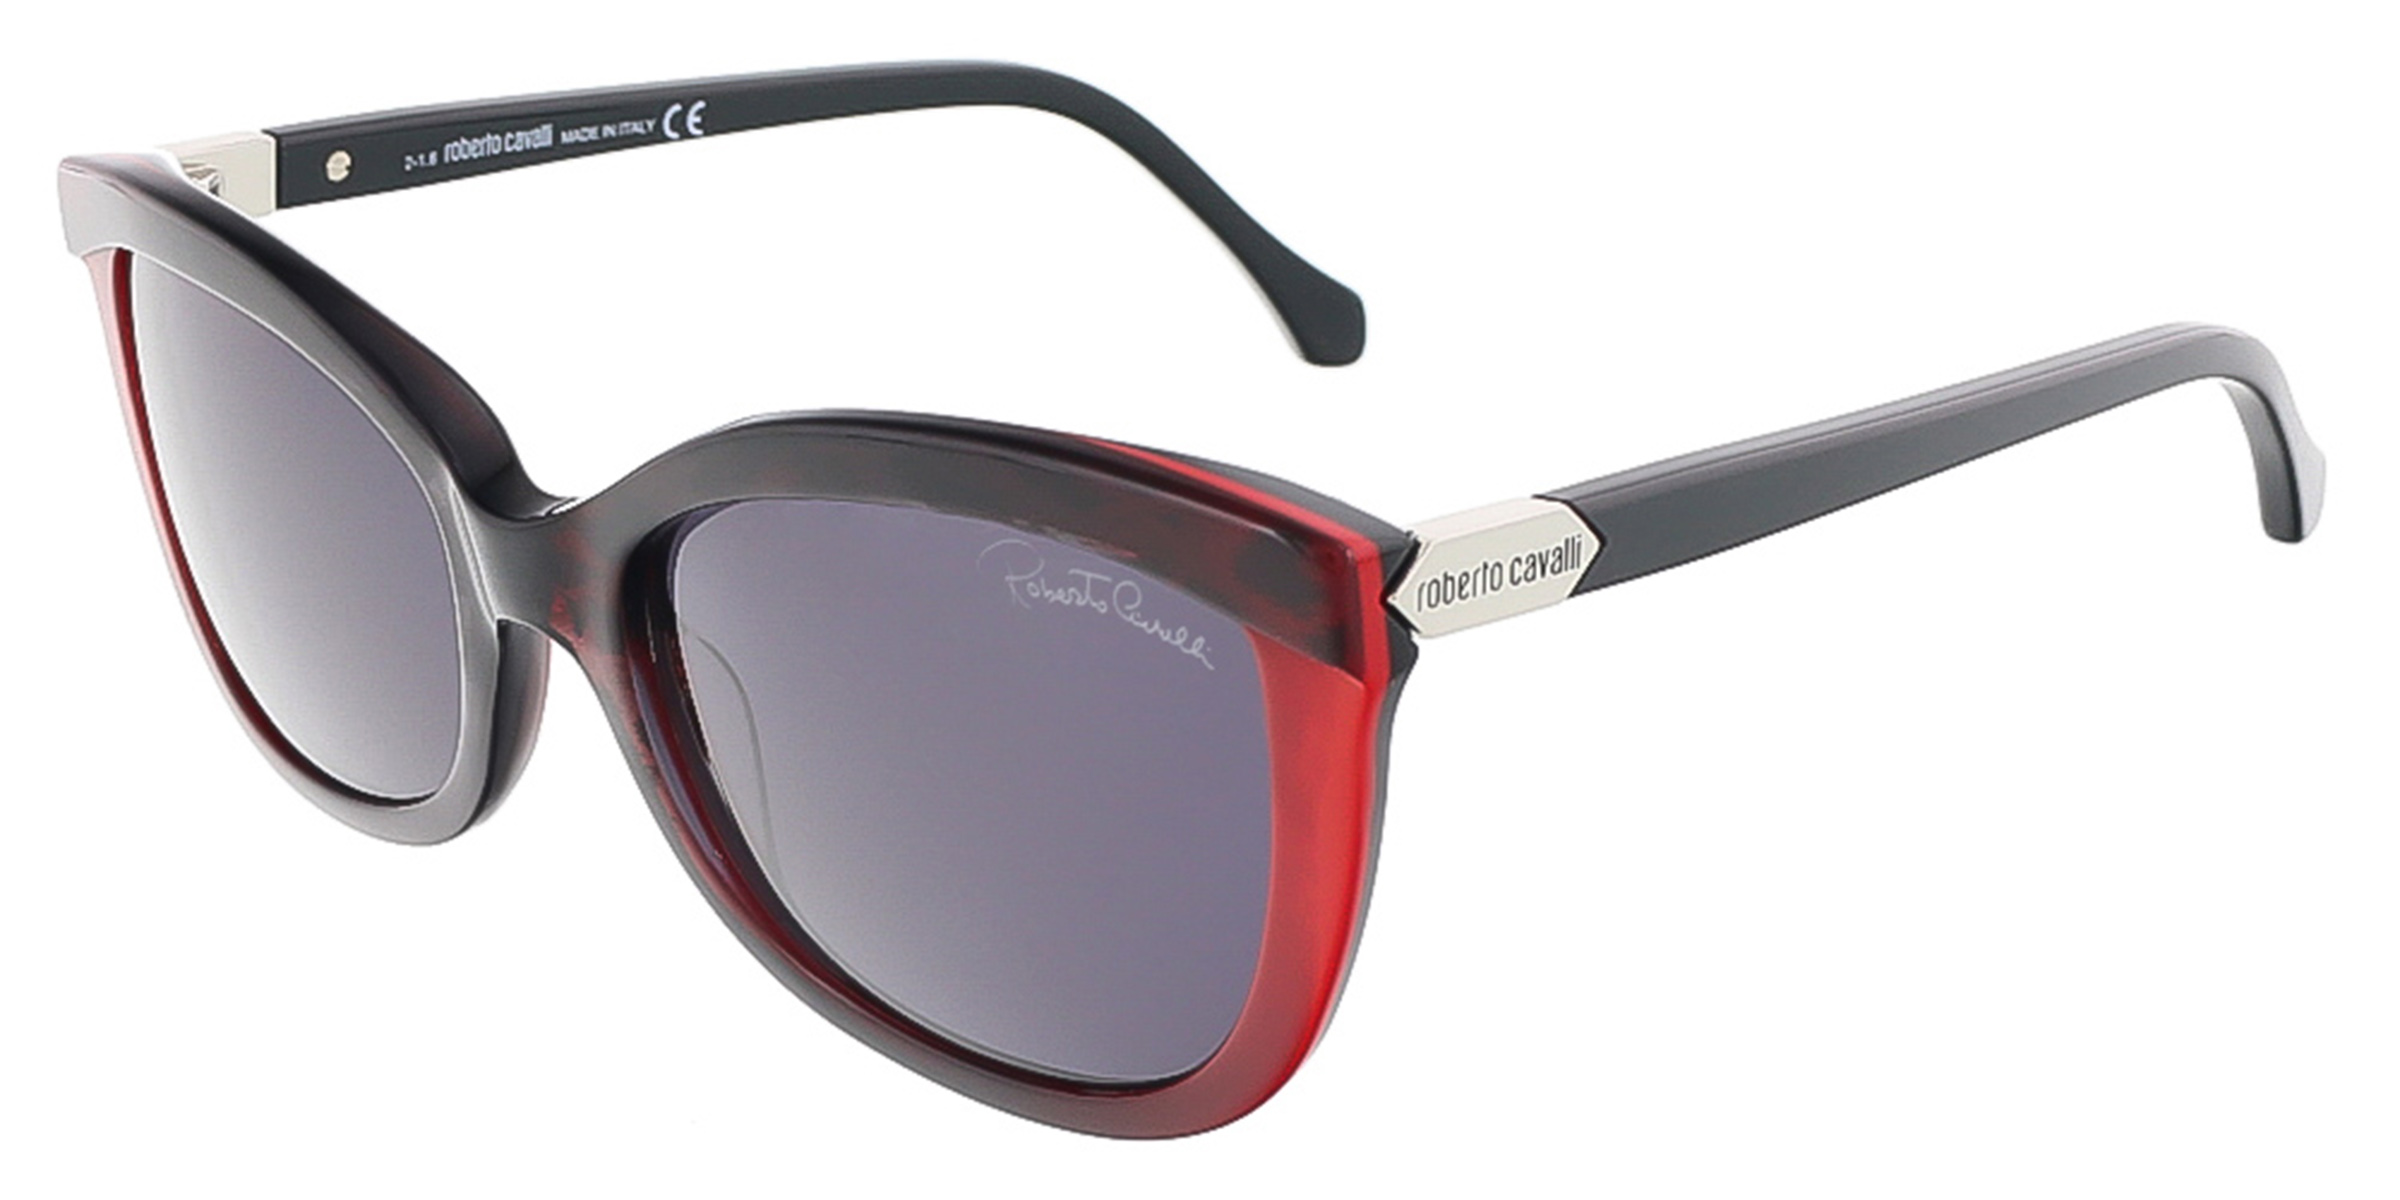 Roberto Cavalli RC788S/S 68A ACRUX Black/Red Butterfly sunglasses